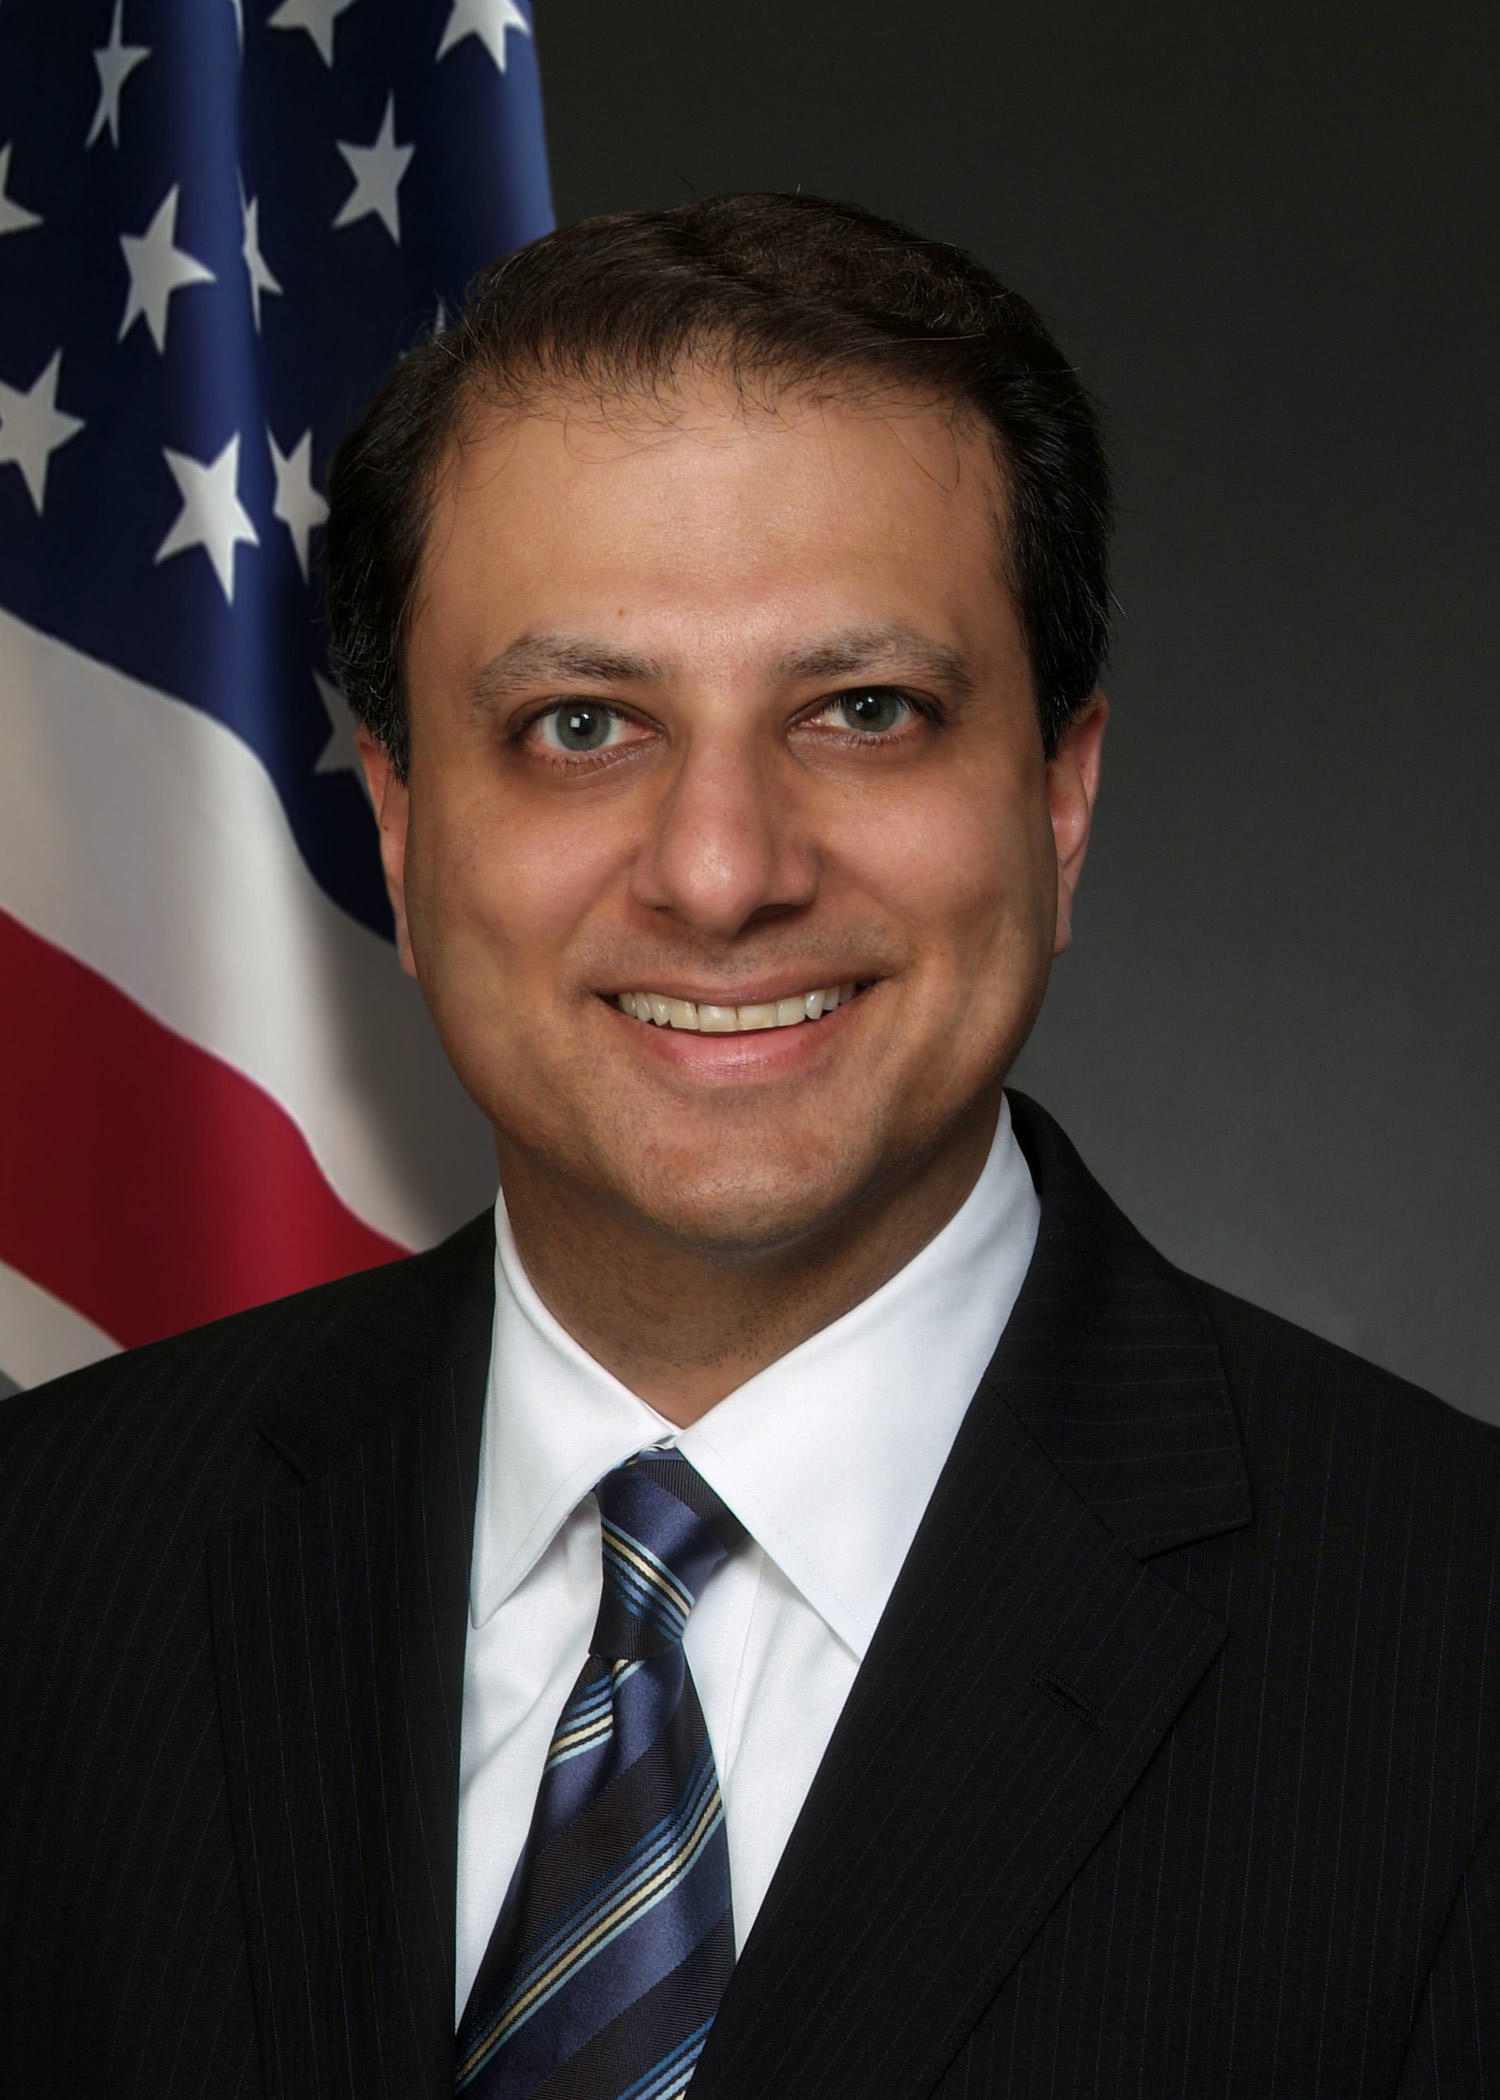 U.S. Attorney Preet Bharara fired from position